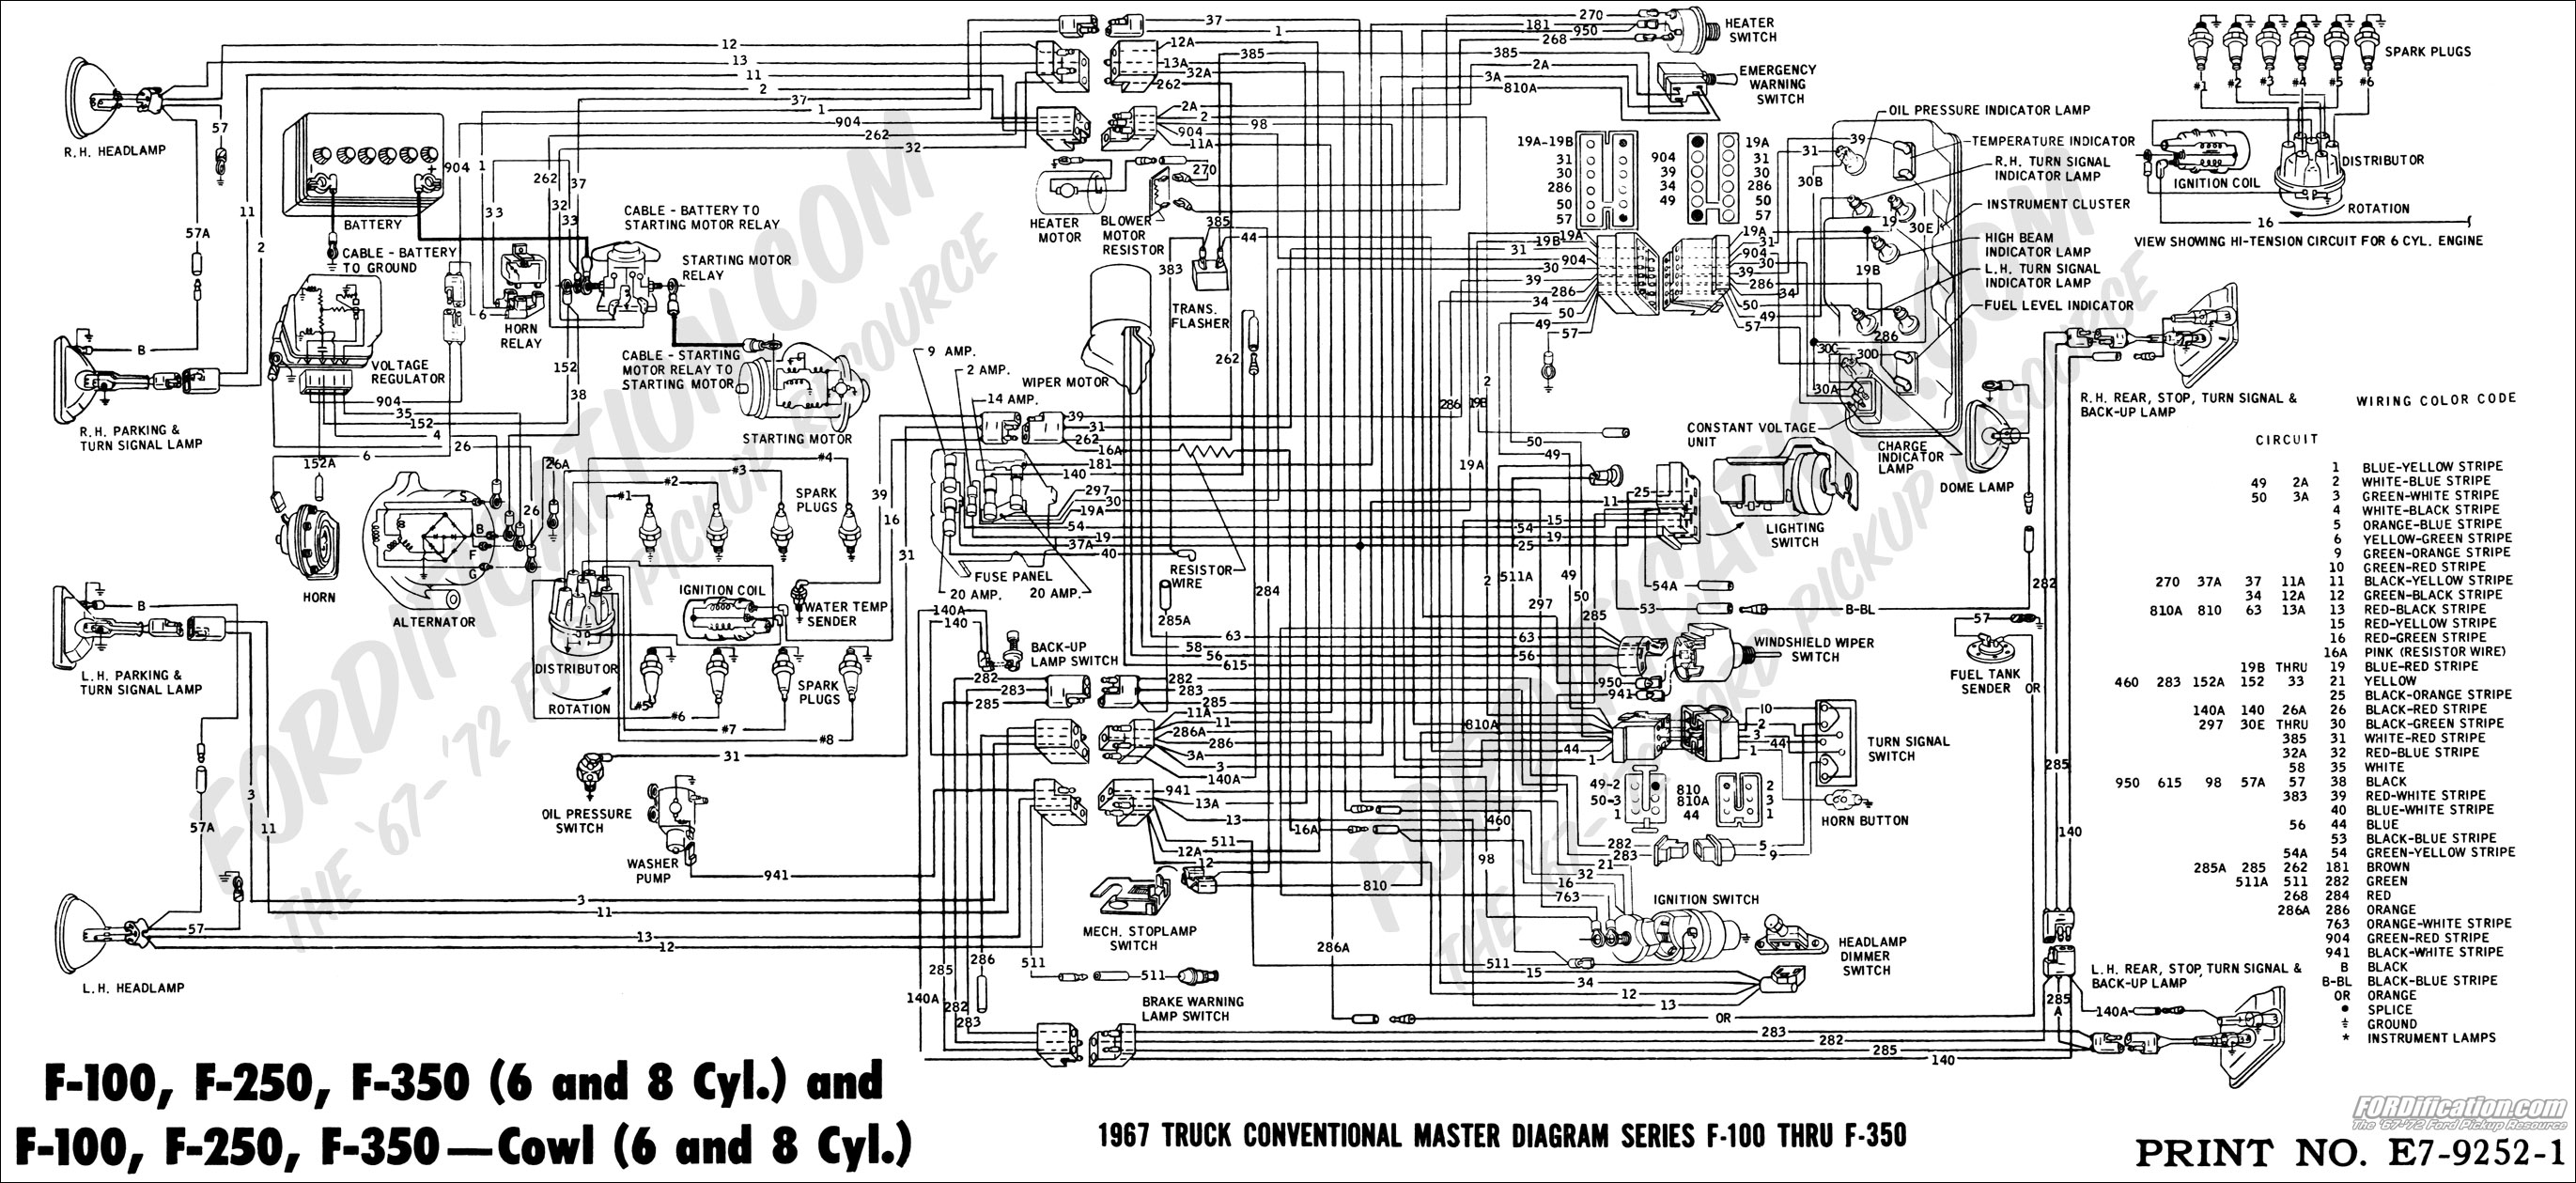 2001 ford f 150 abs wiring diagram ford think wiring diagram ford wiring diagrams